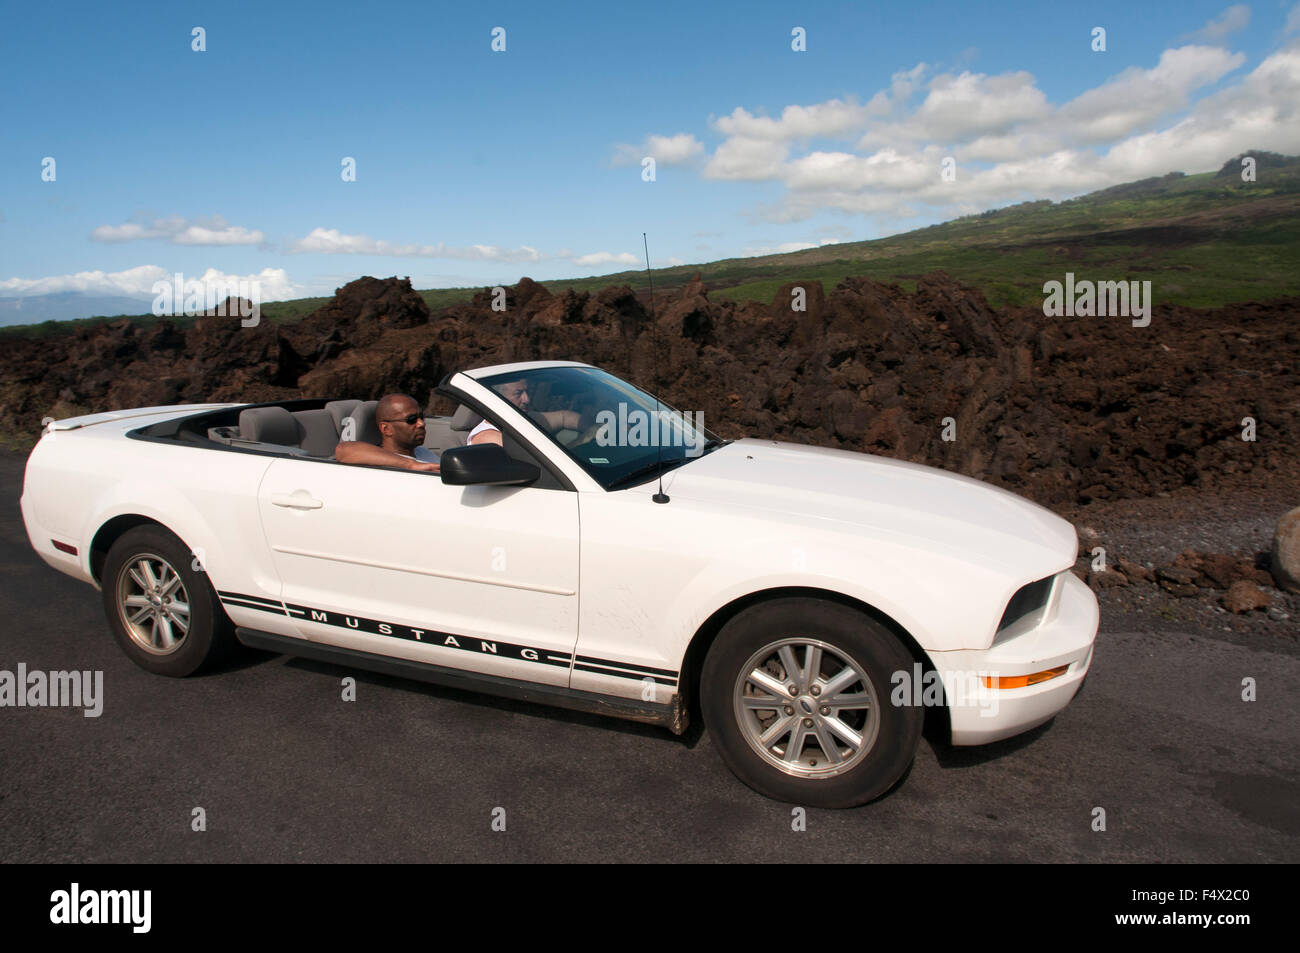 White mustang in Cinder cones in the Haleakala National Park. Views from the viewpoint of Leleiwi. Maui. Hawaii. - Stock Image